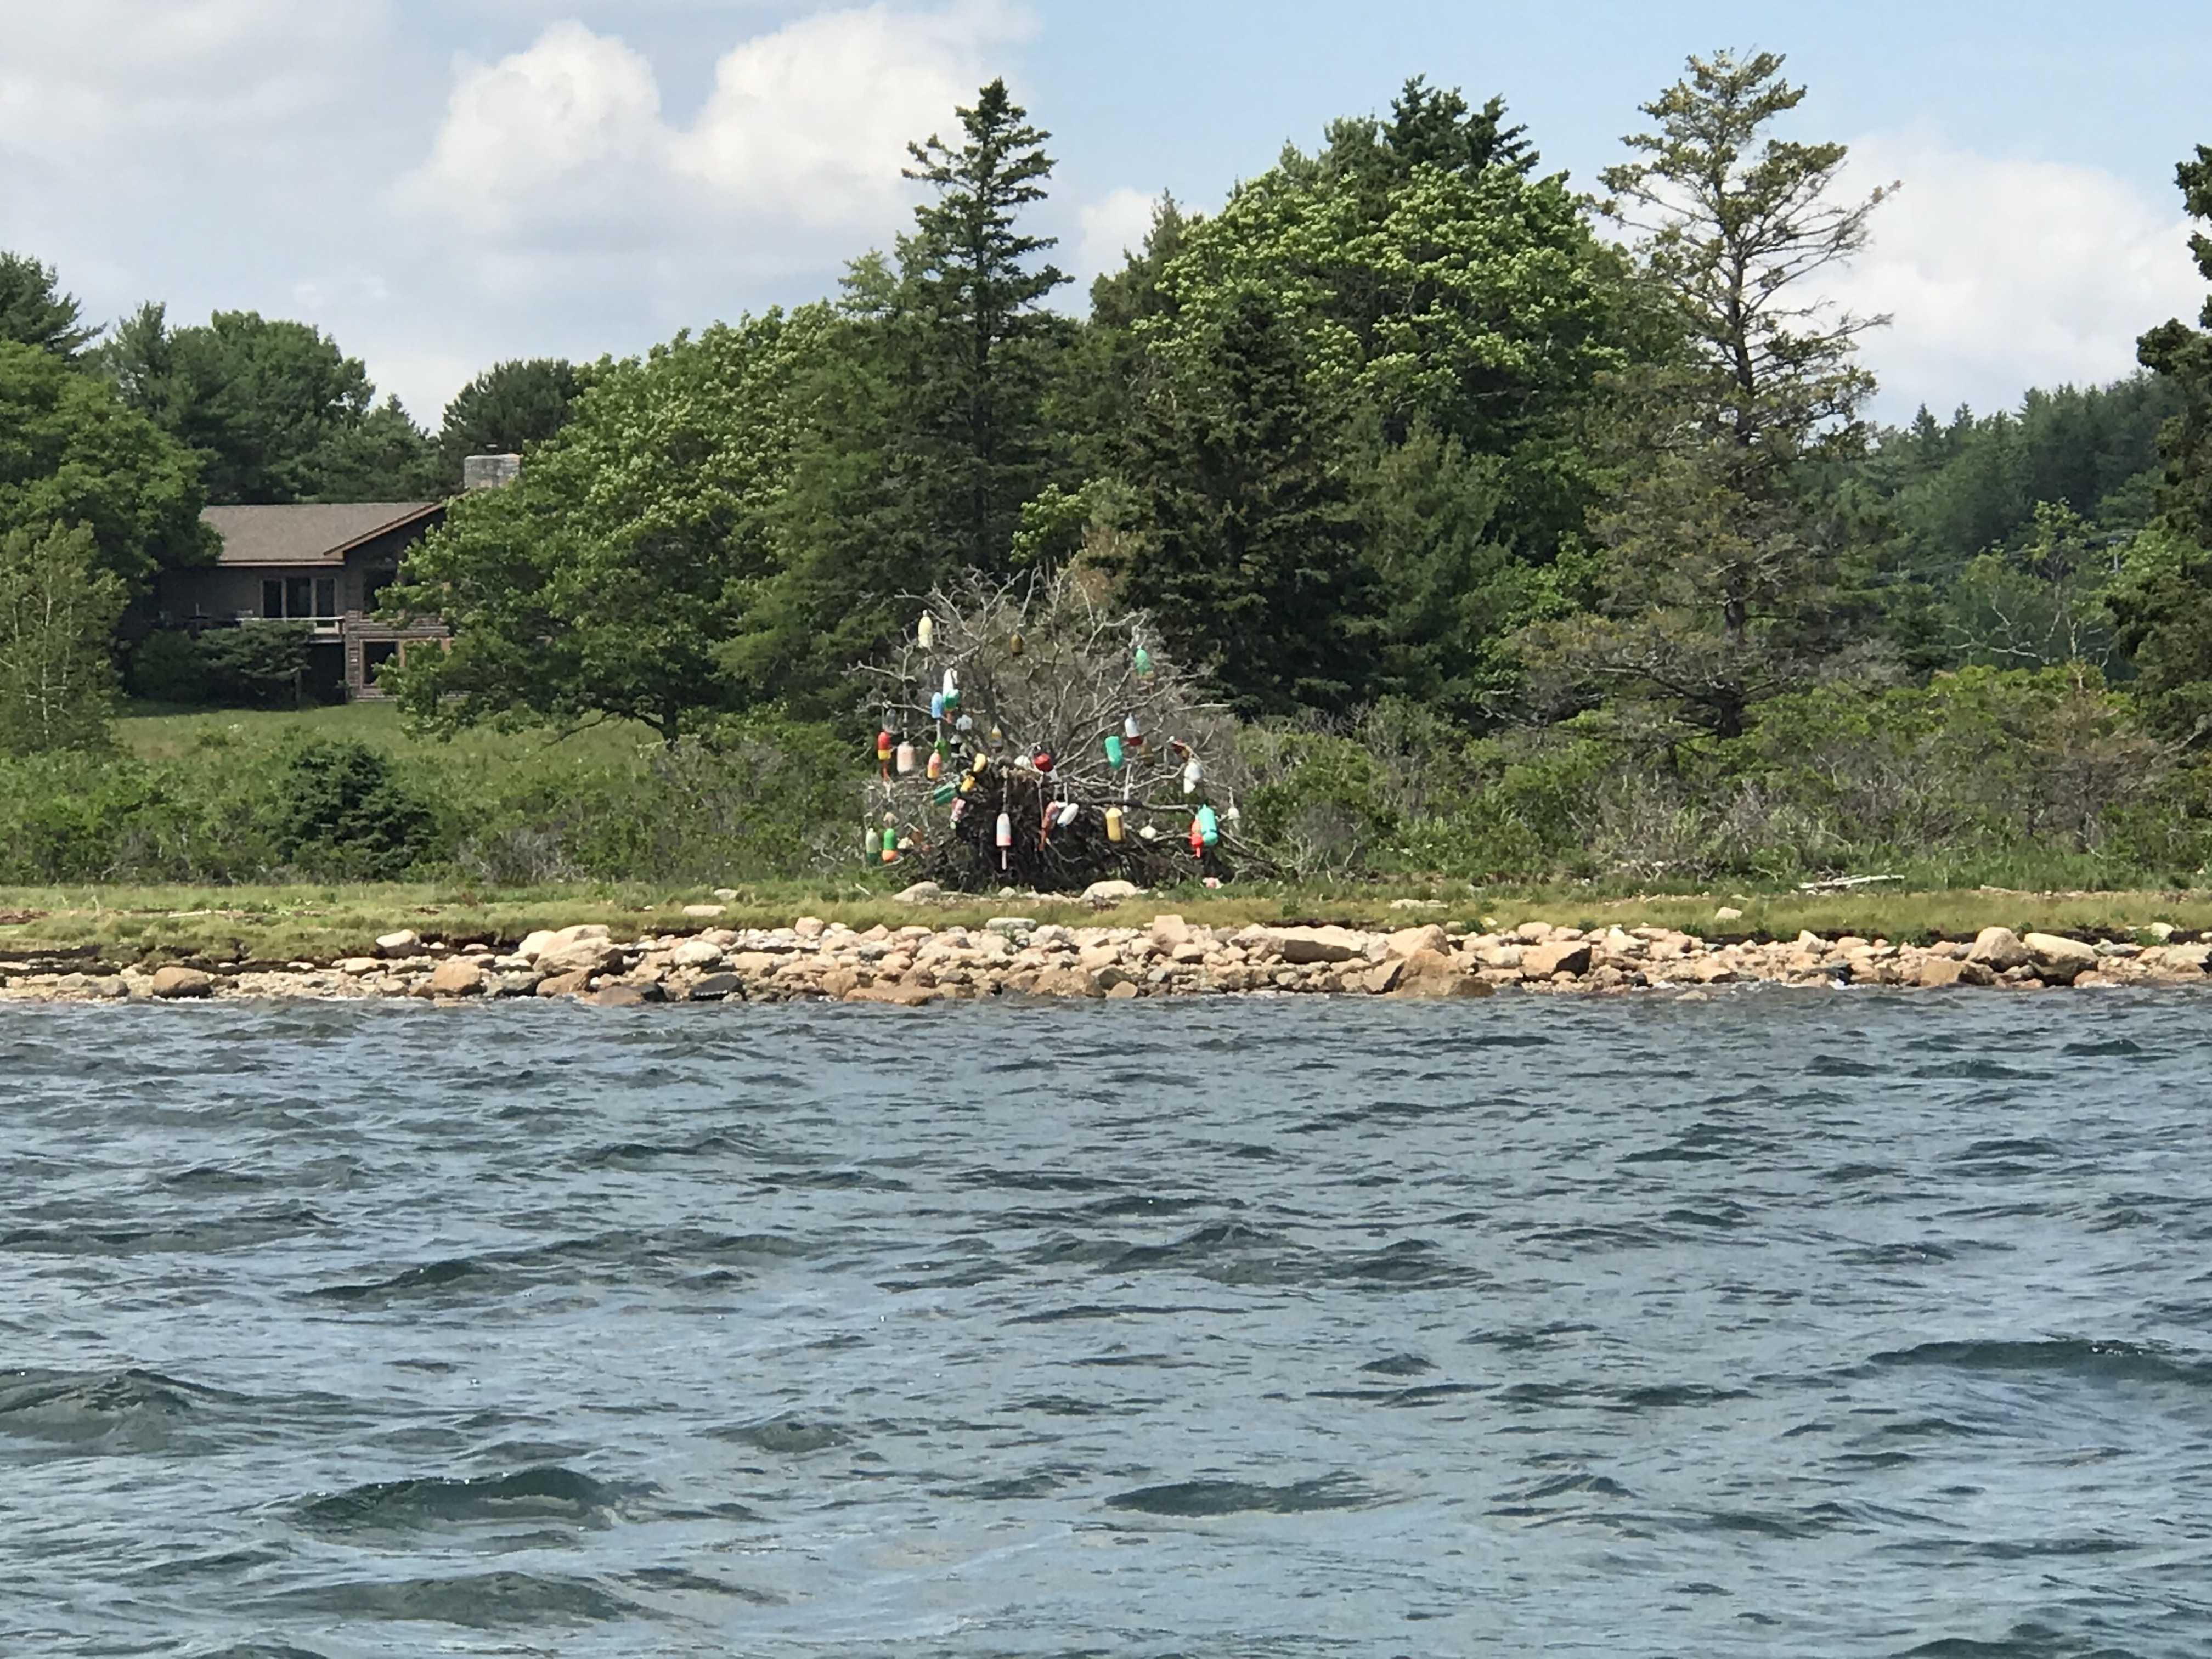 Lobster bouy tree on Somes Sound